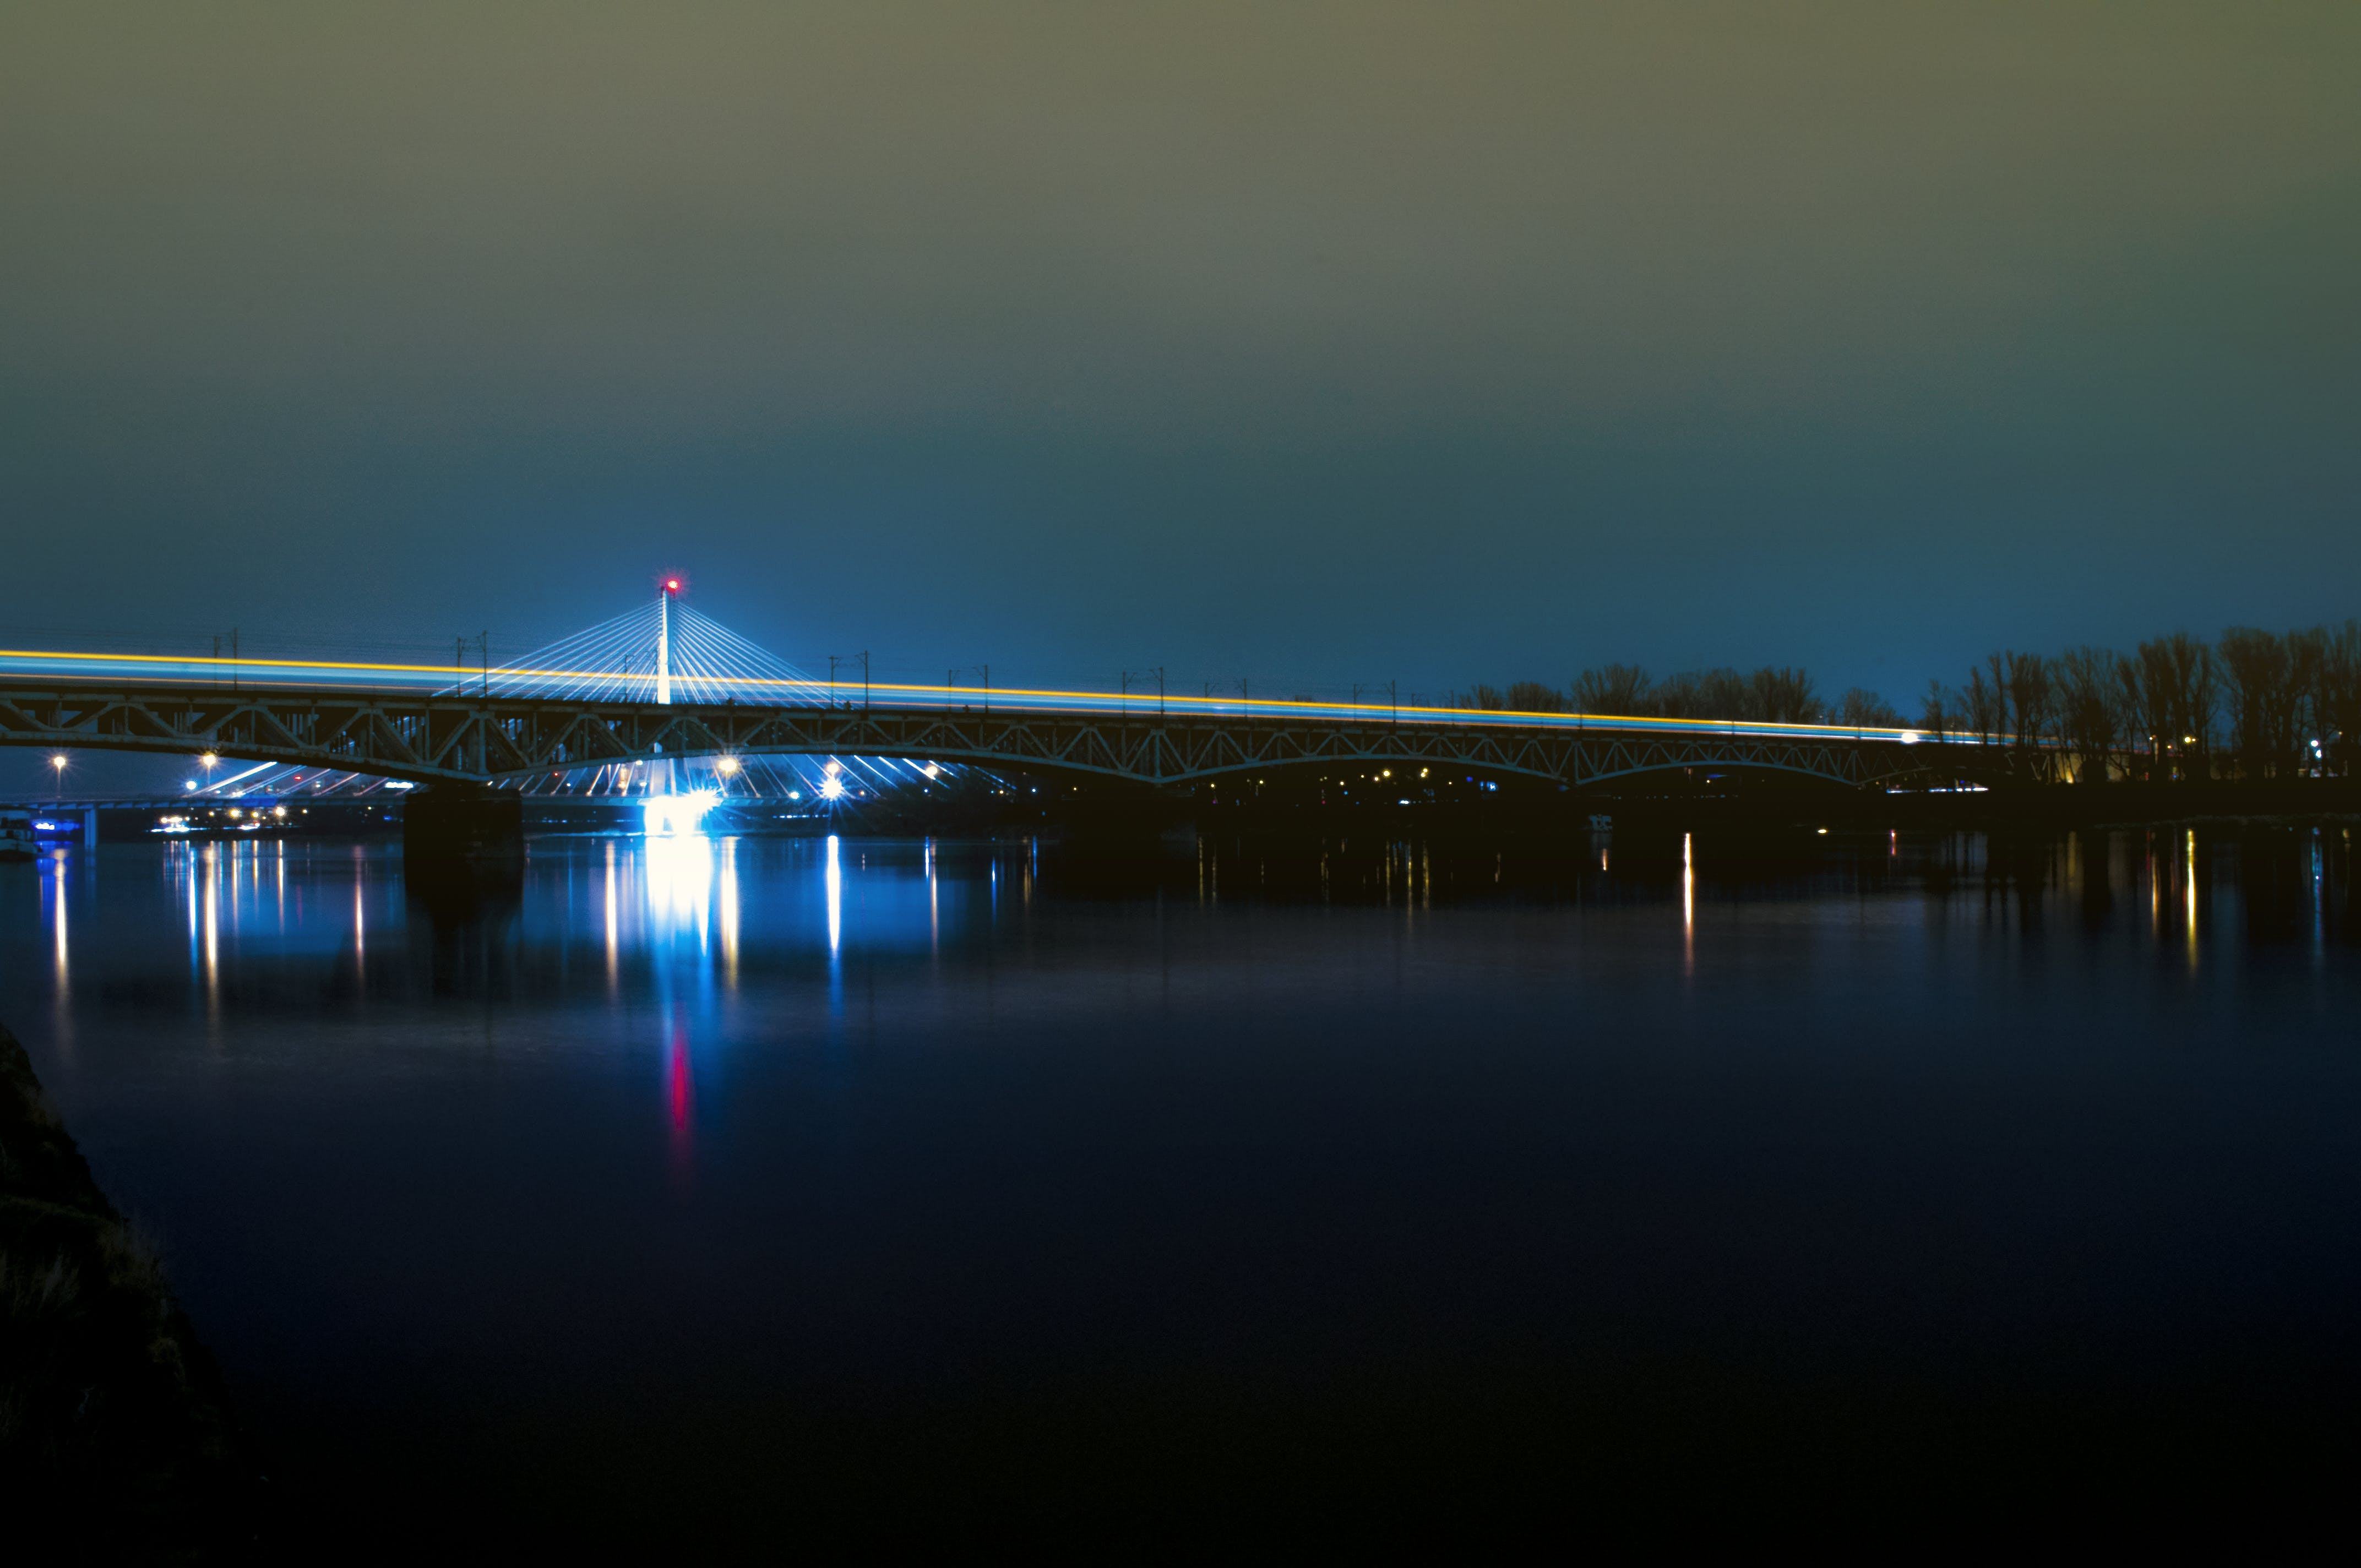 Body of Water With Bridge at Night